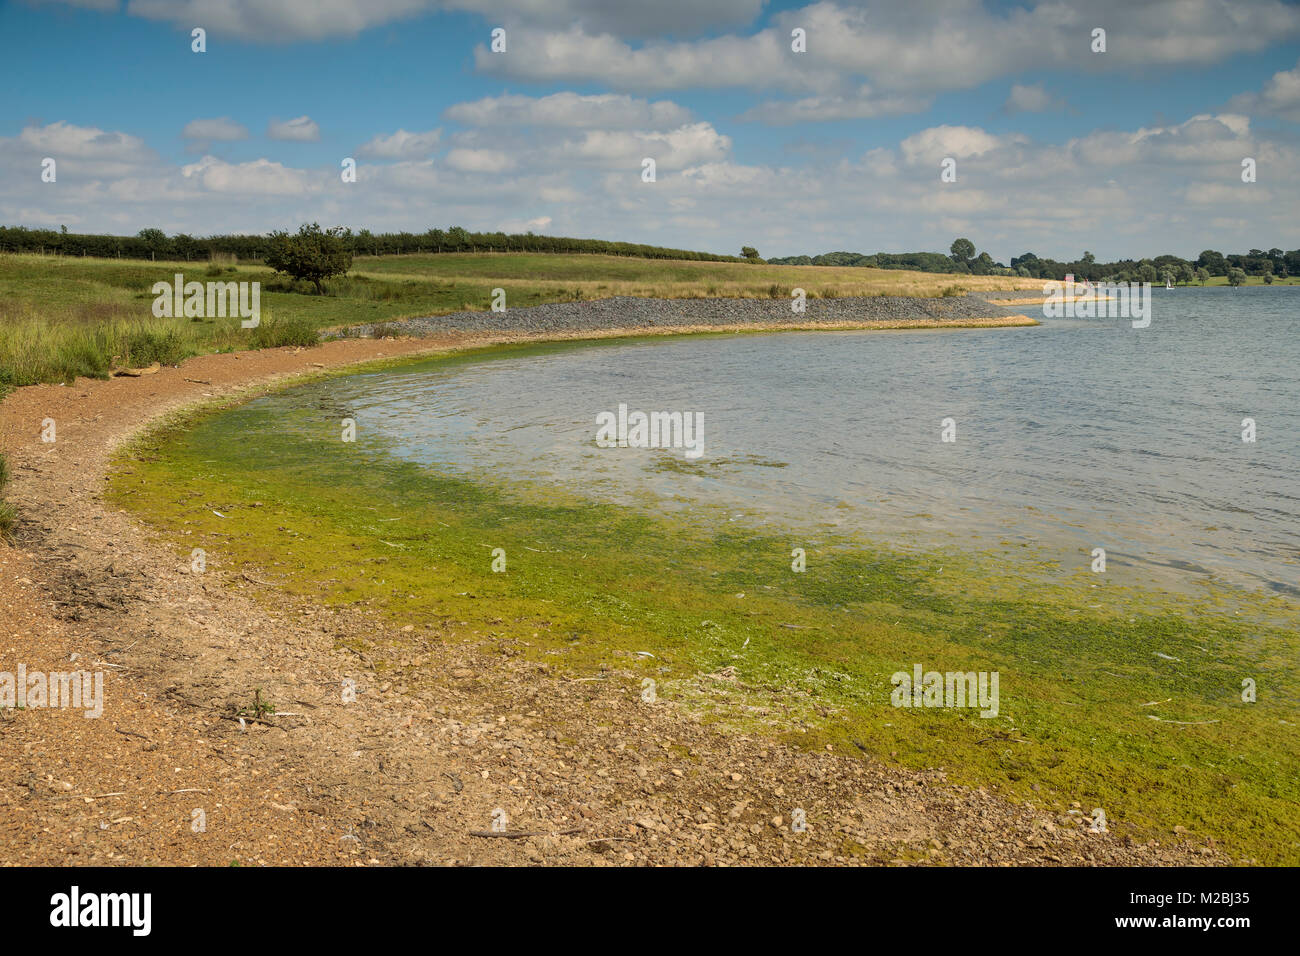 An image showing the lead up to a headland at Rutland Water, Rutland, England, UK, Stock Photo